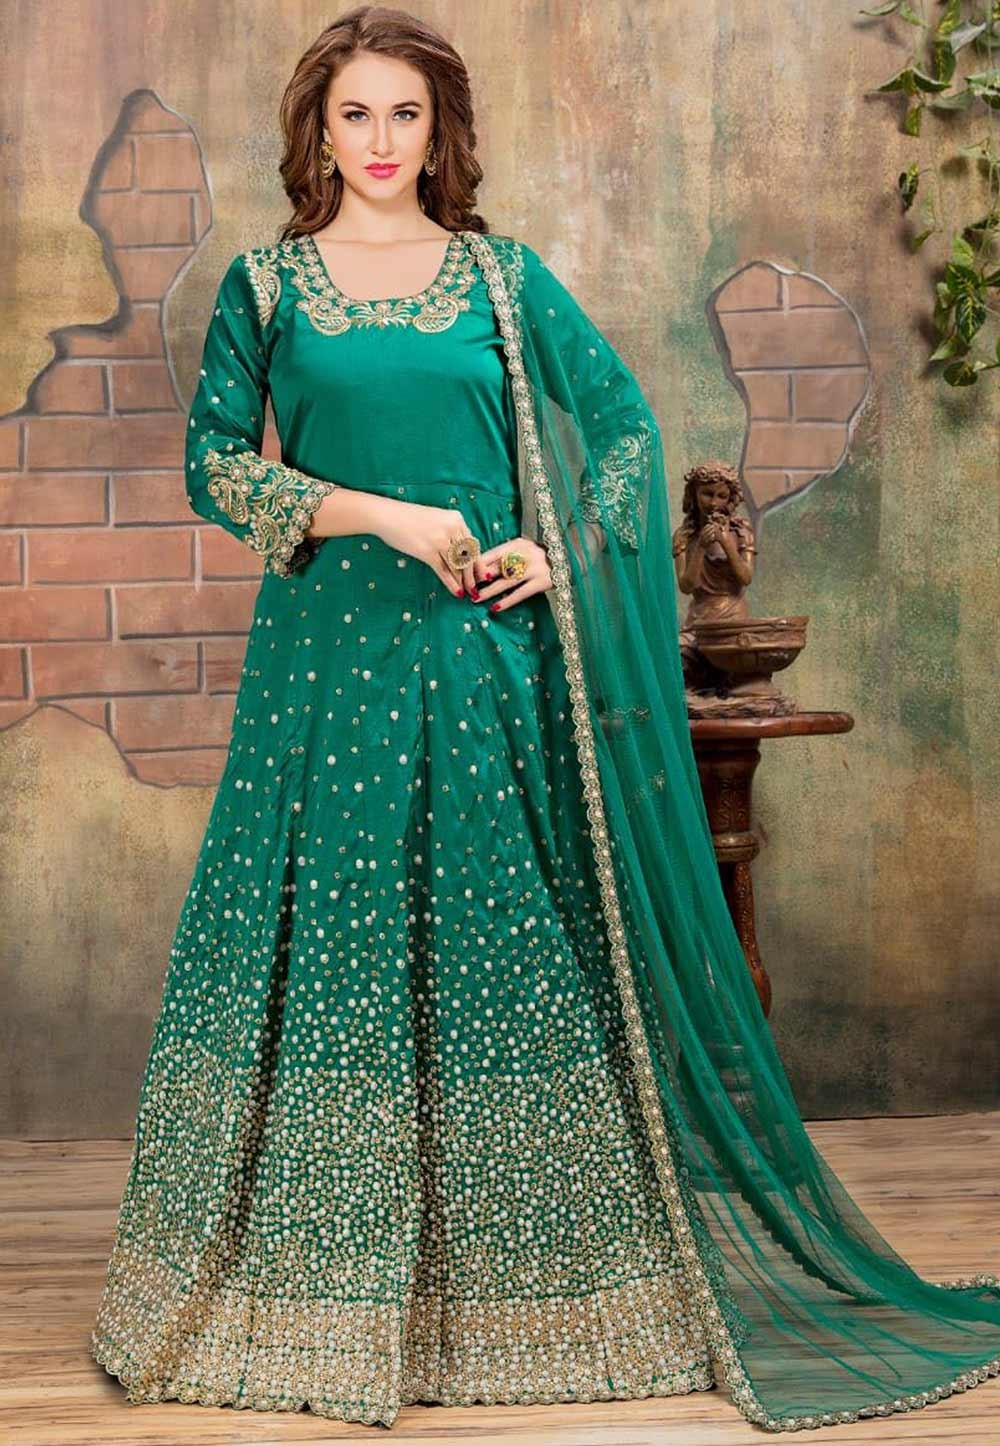 Astounding Salwar Kameez in Green Color Silk Fabric